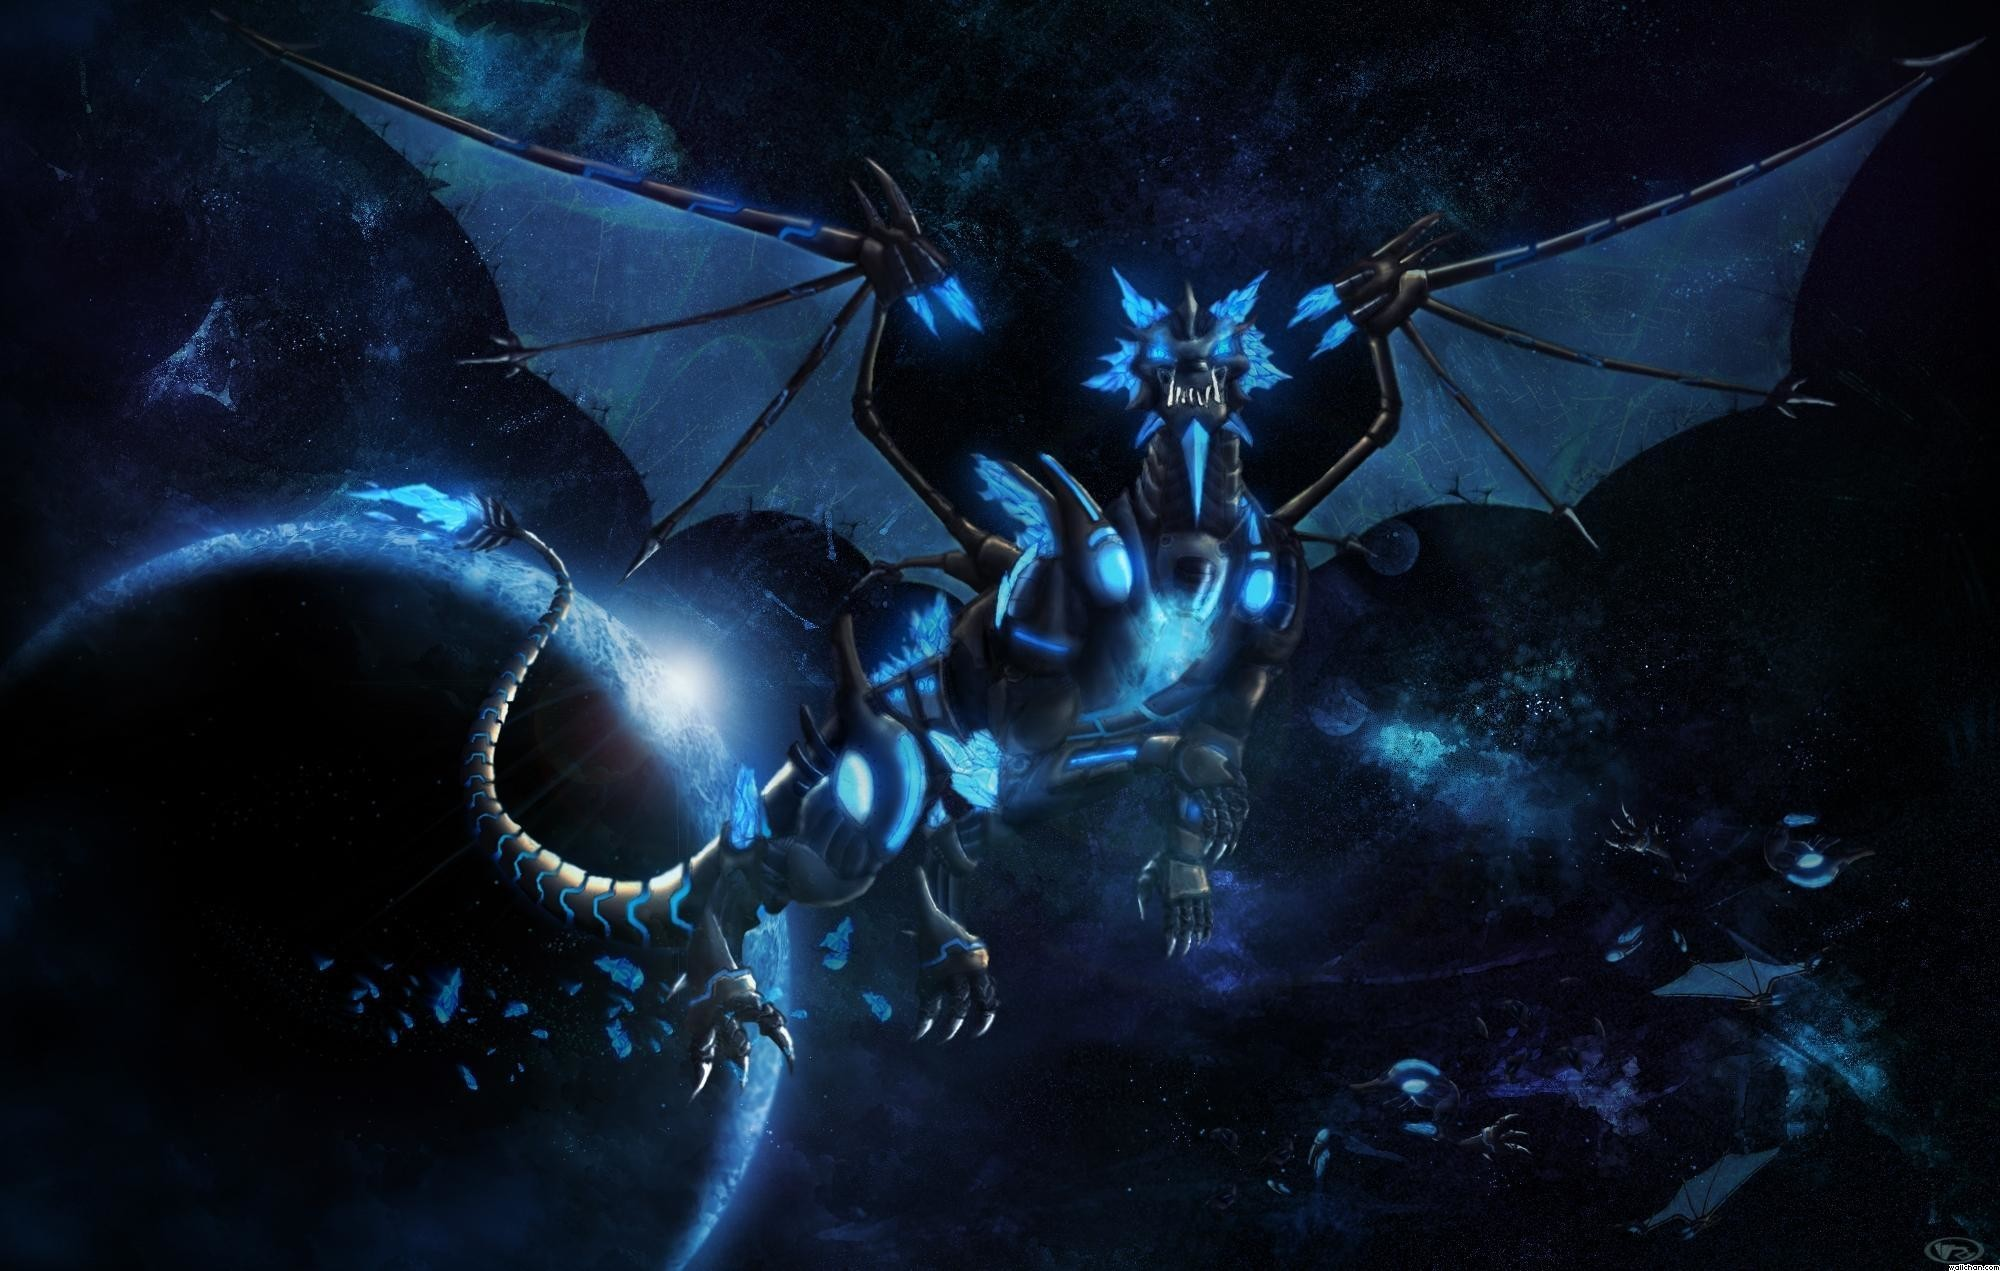 Fall Wallpaper Hd For Galaxy S4 Red Eyes Black Dragon Vs Blue Eyes White Dragon Wallpaper